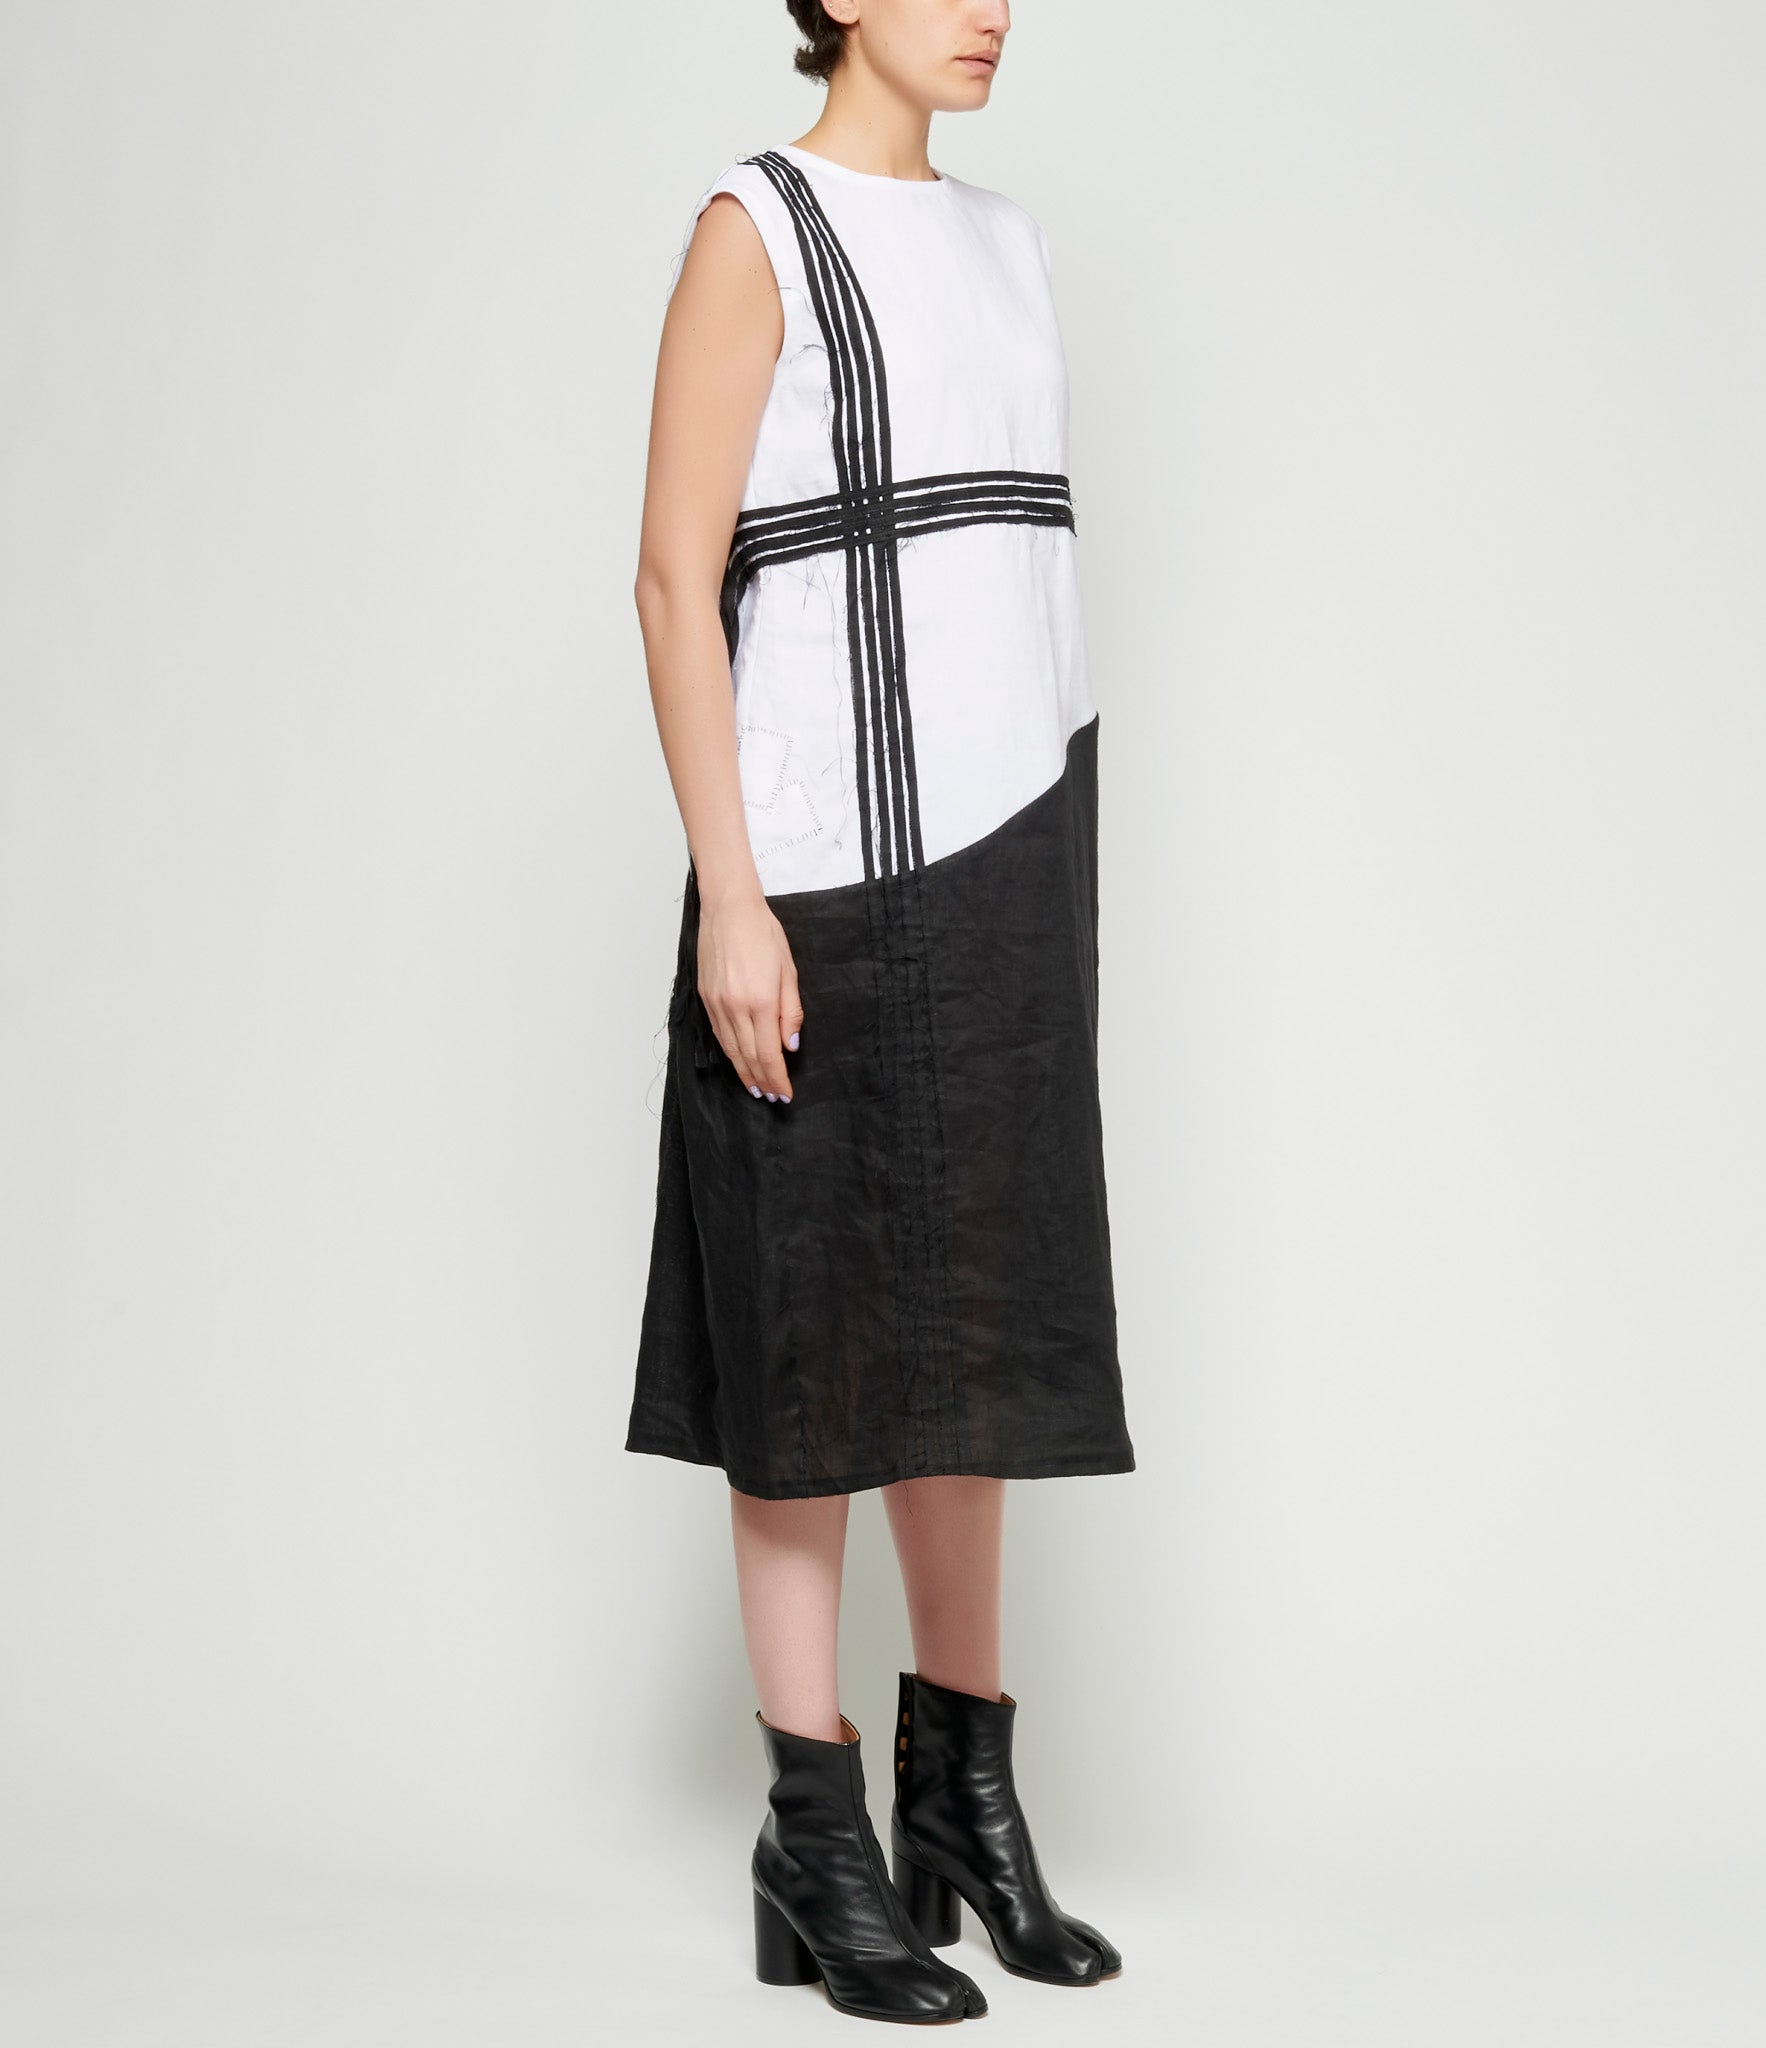 Maria Turri Black Stripes Dress